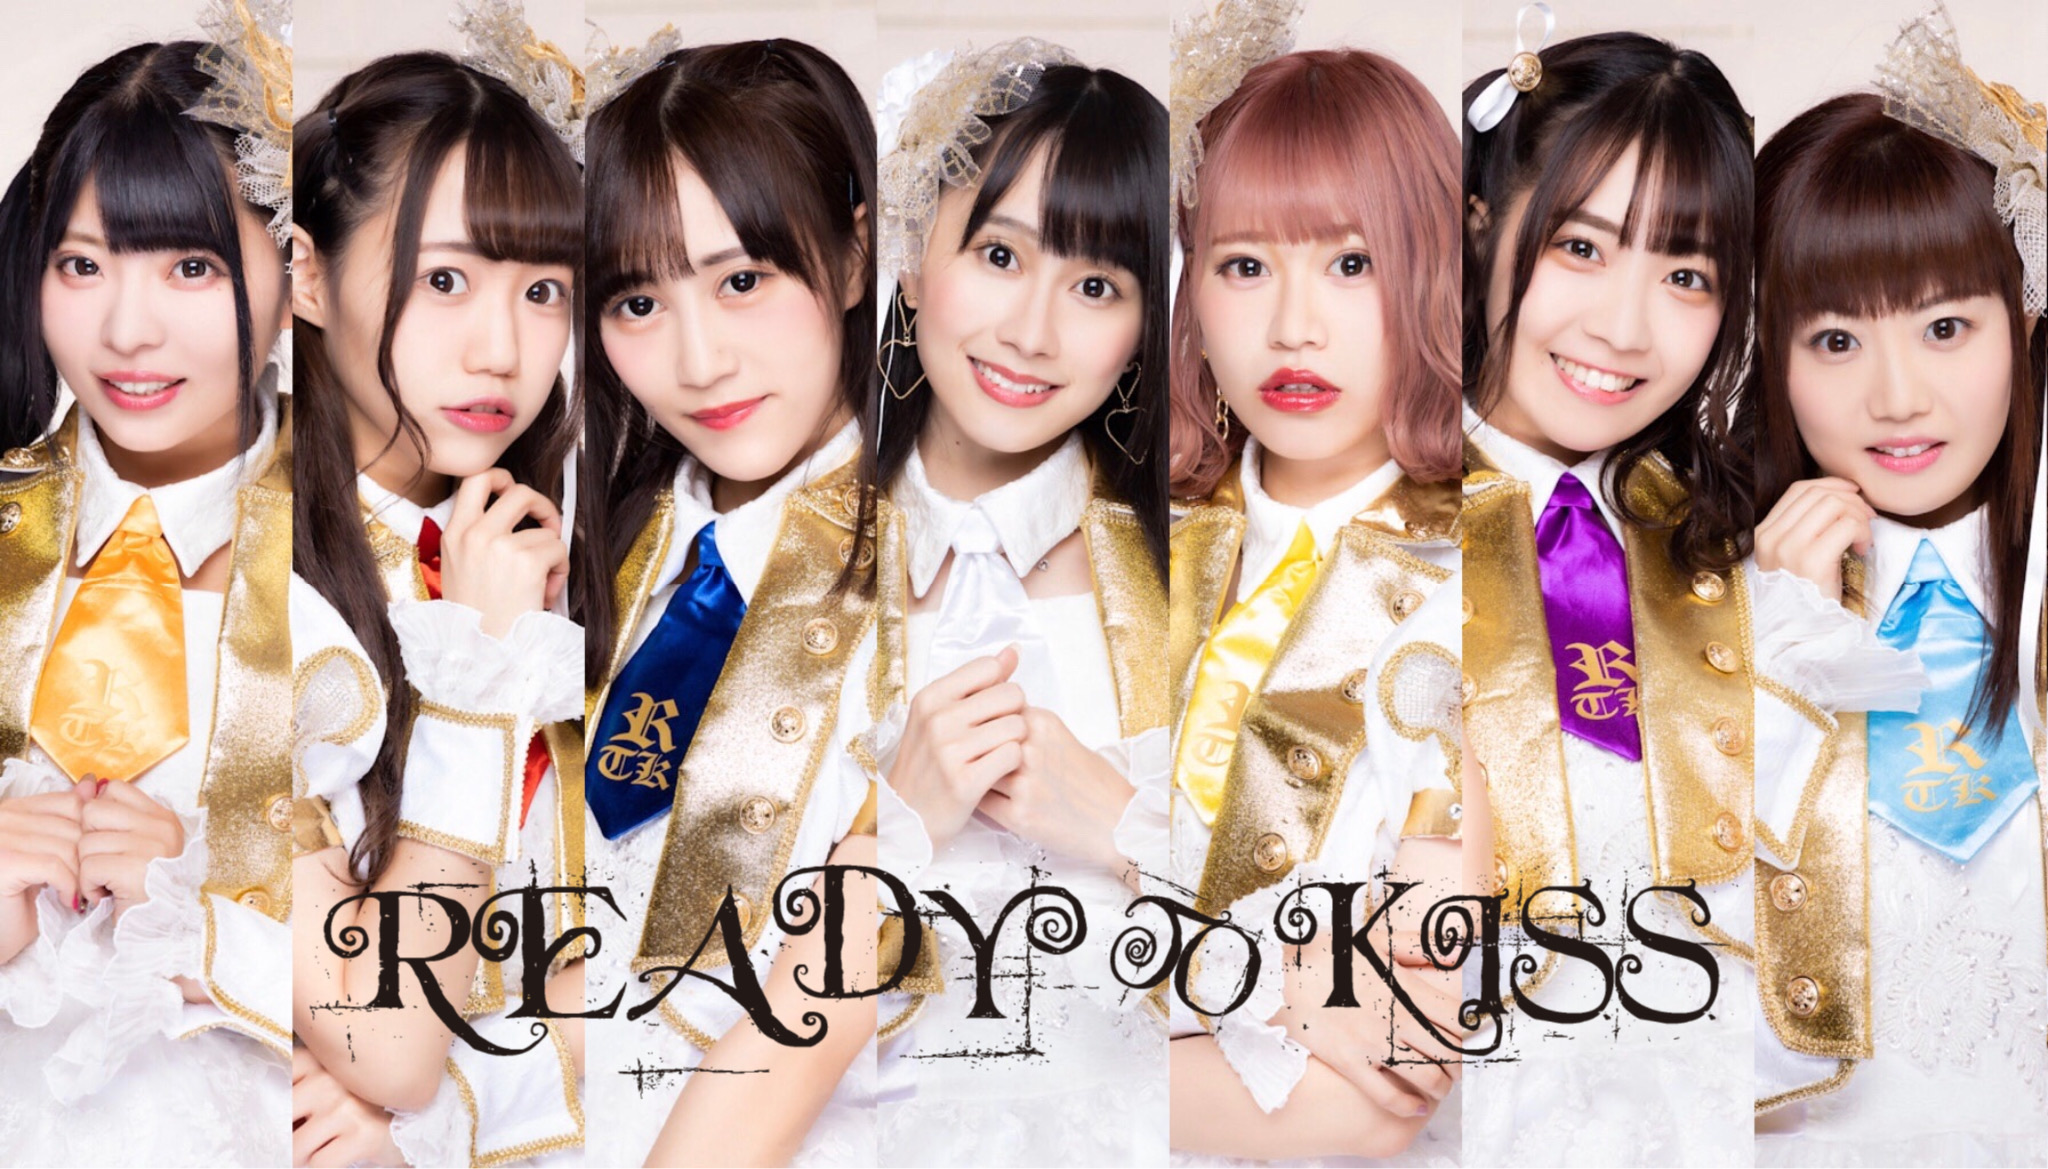 READY TO KISS x BABY TO KISS 2マン公演